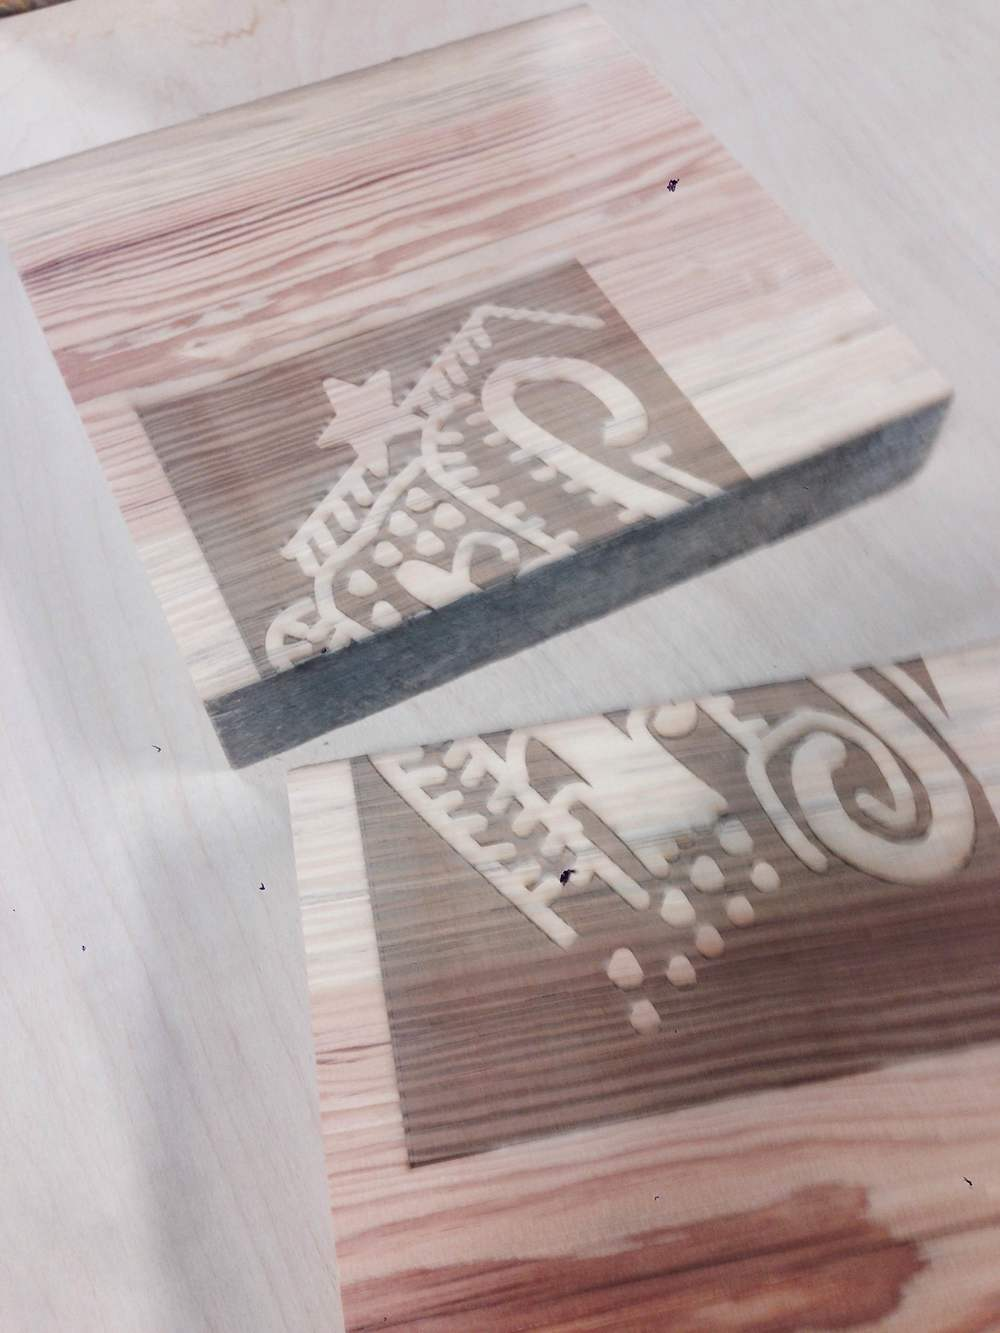 Laser engraving on reclaimed wood.